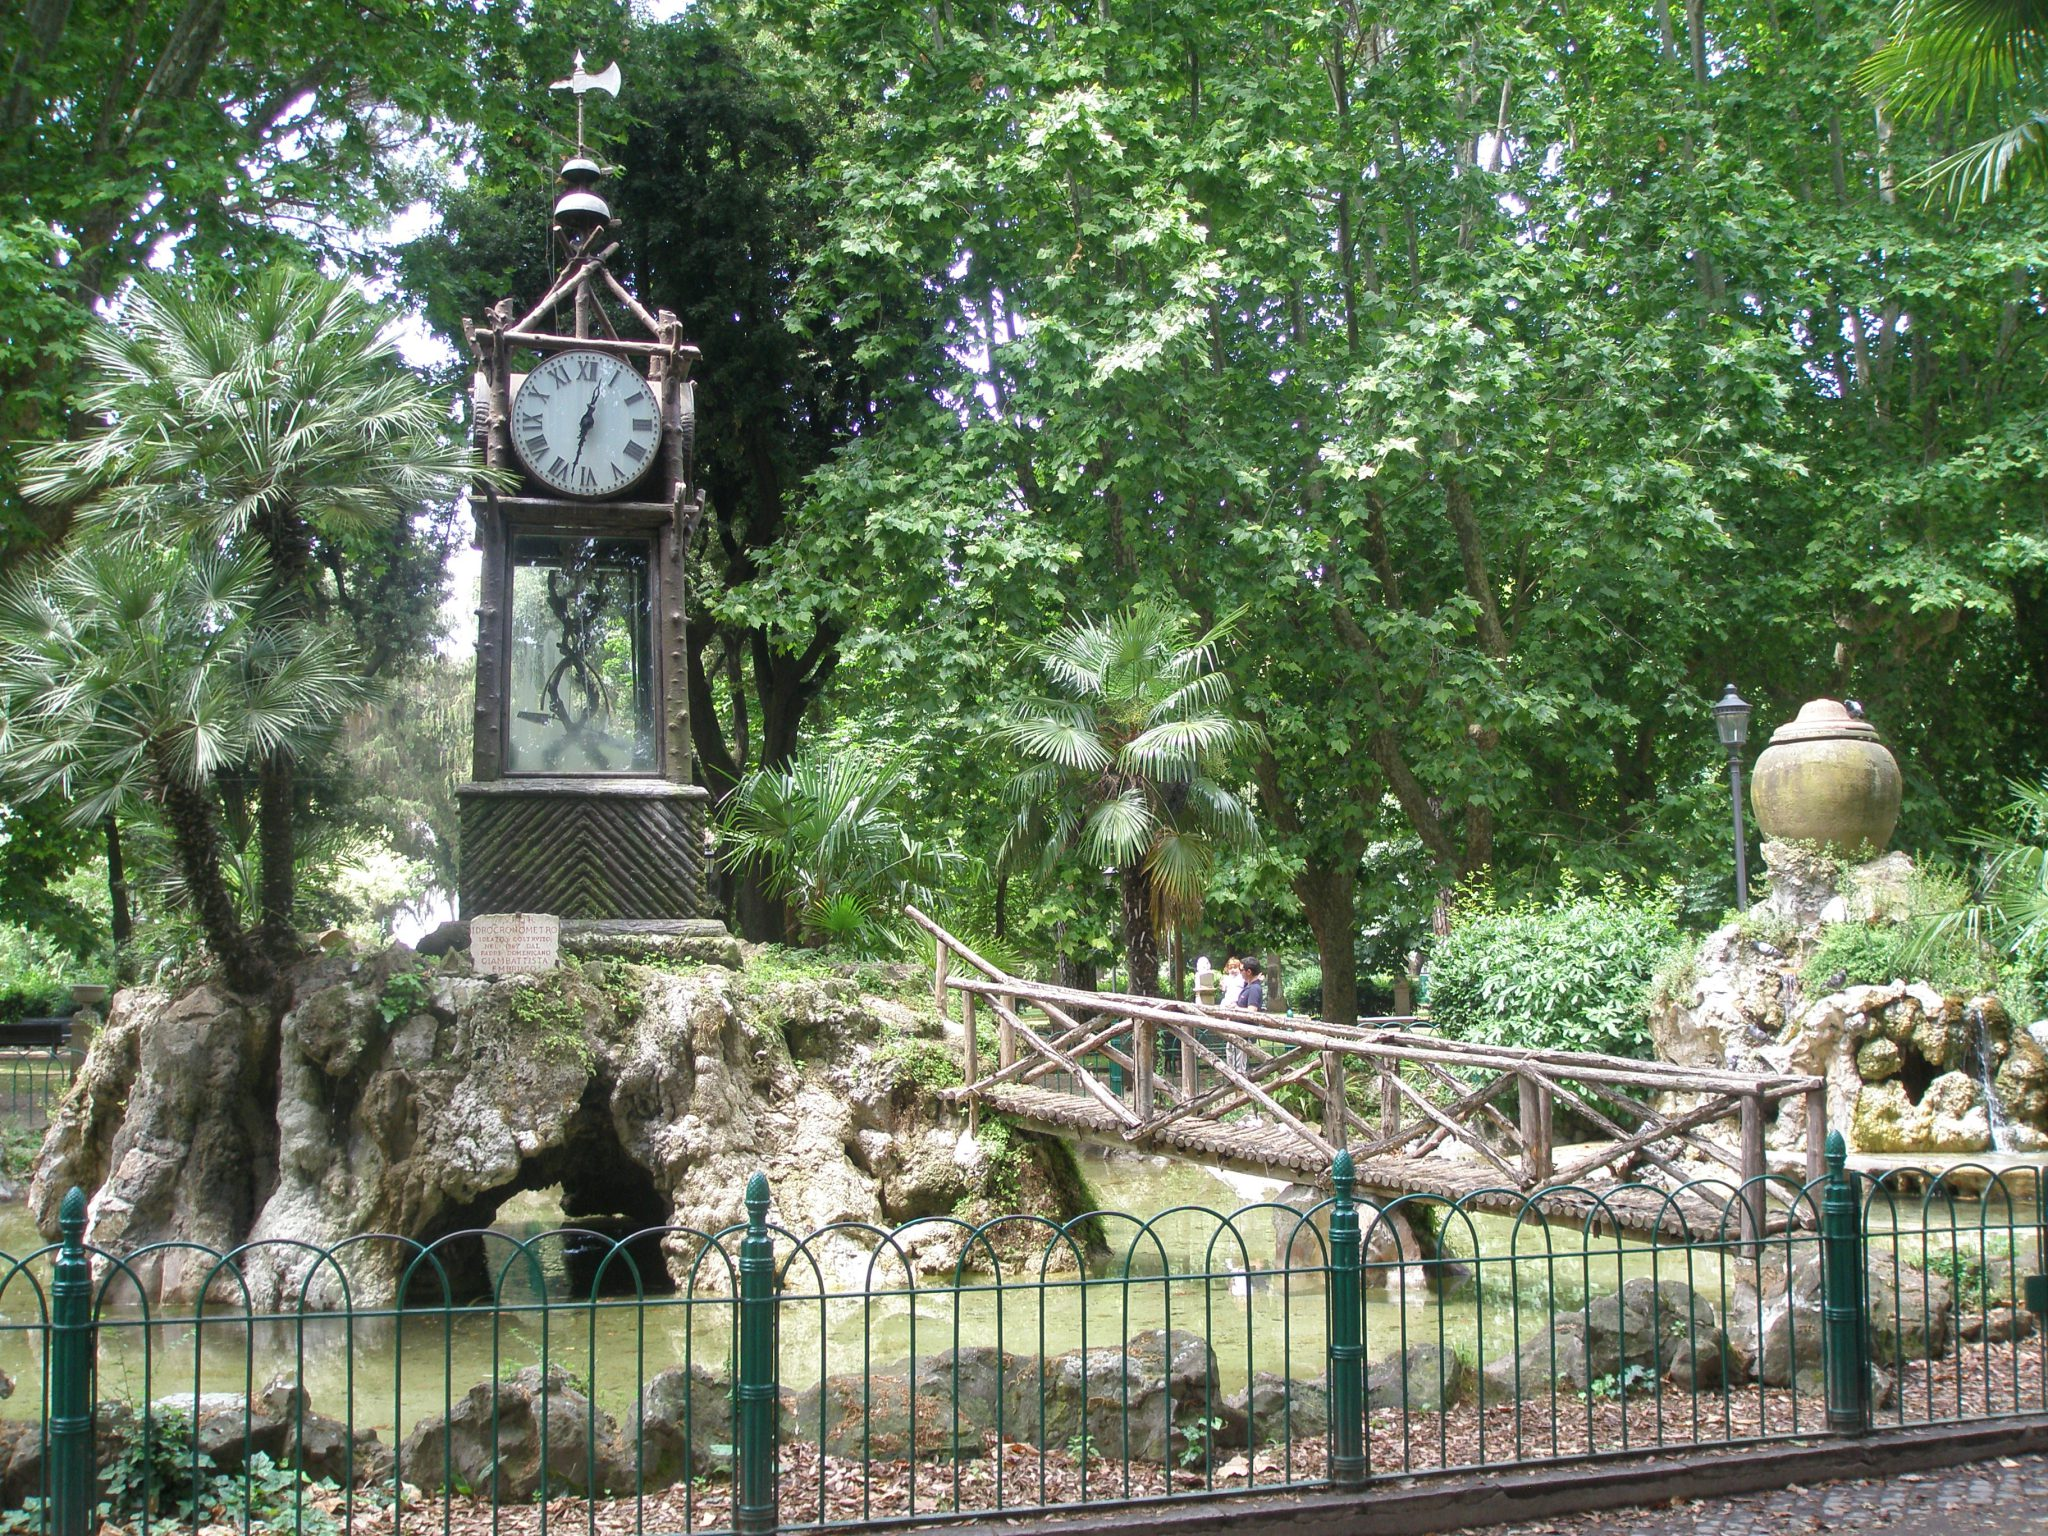 Gian Battista Embriaco's hydrochronometer was installed in the gardens in 1873. This water clock still keeps perfect time.